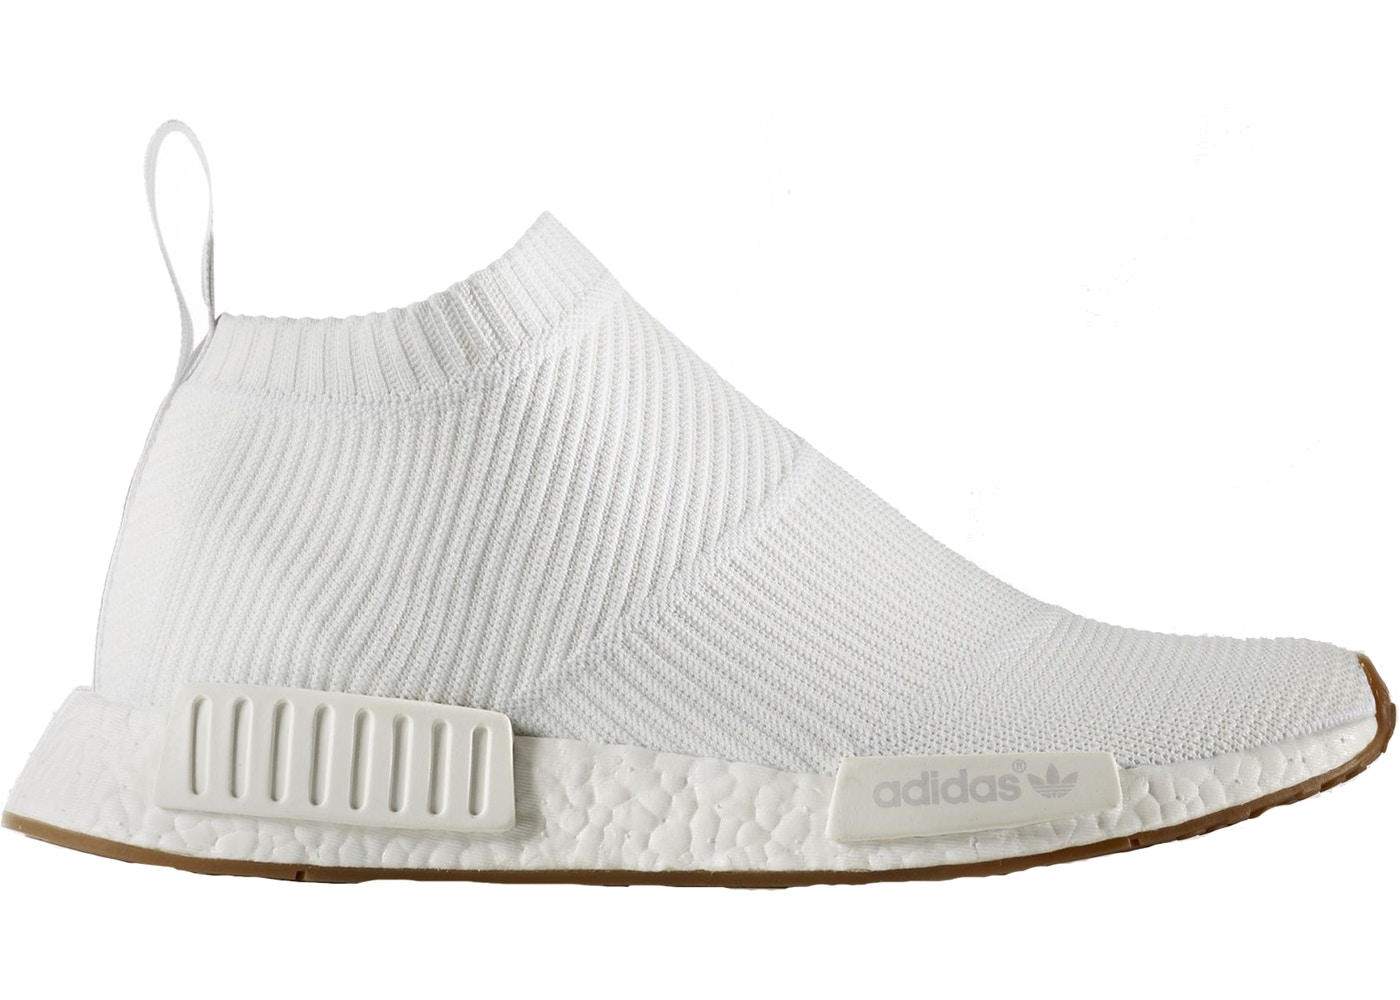 5c119ad47 adidas NMD City Sock Gum Pack White - BA7208